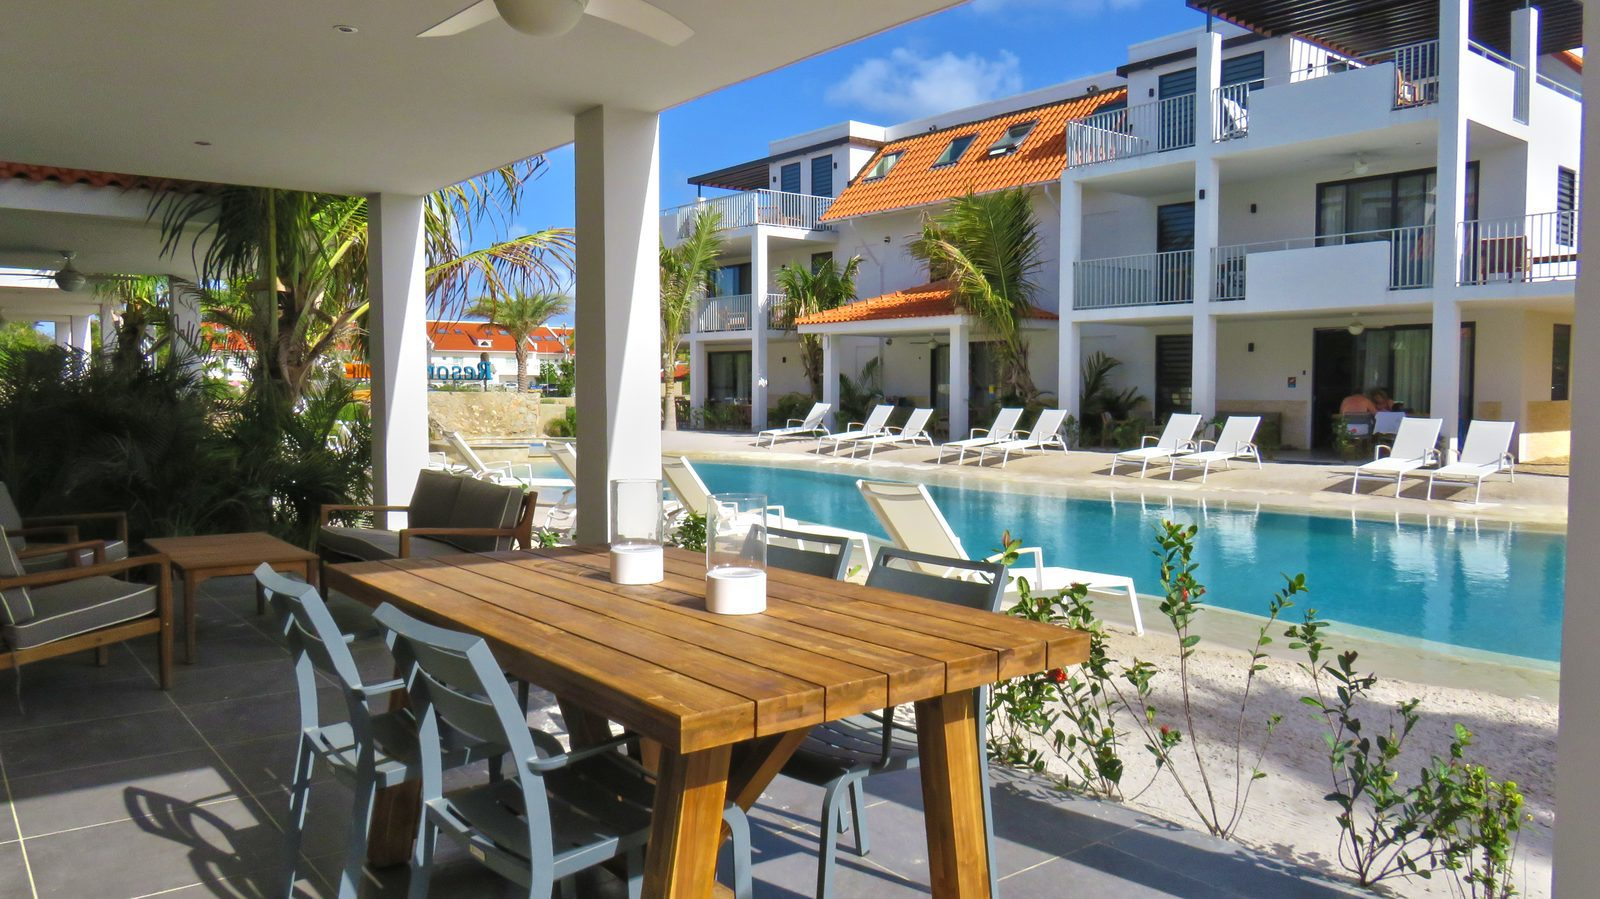 If you want to stay at an accomodation on Bonaire, you really need to take a look at Resort Bonaire. This is a new resort with nice facilities.